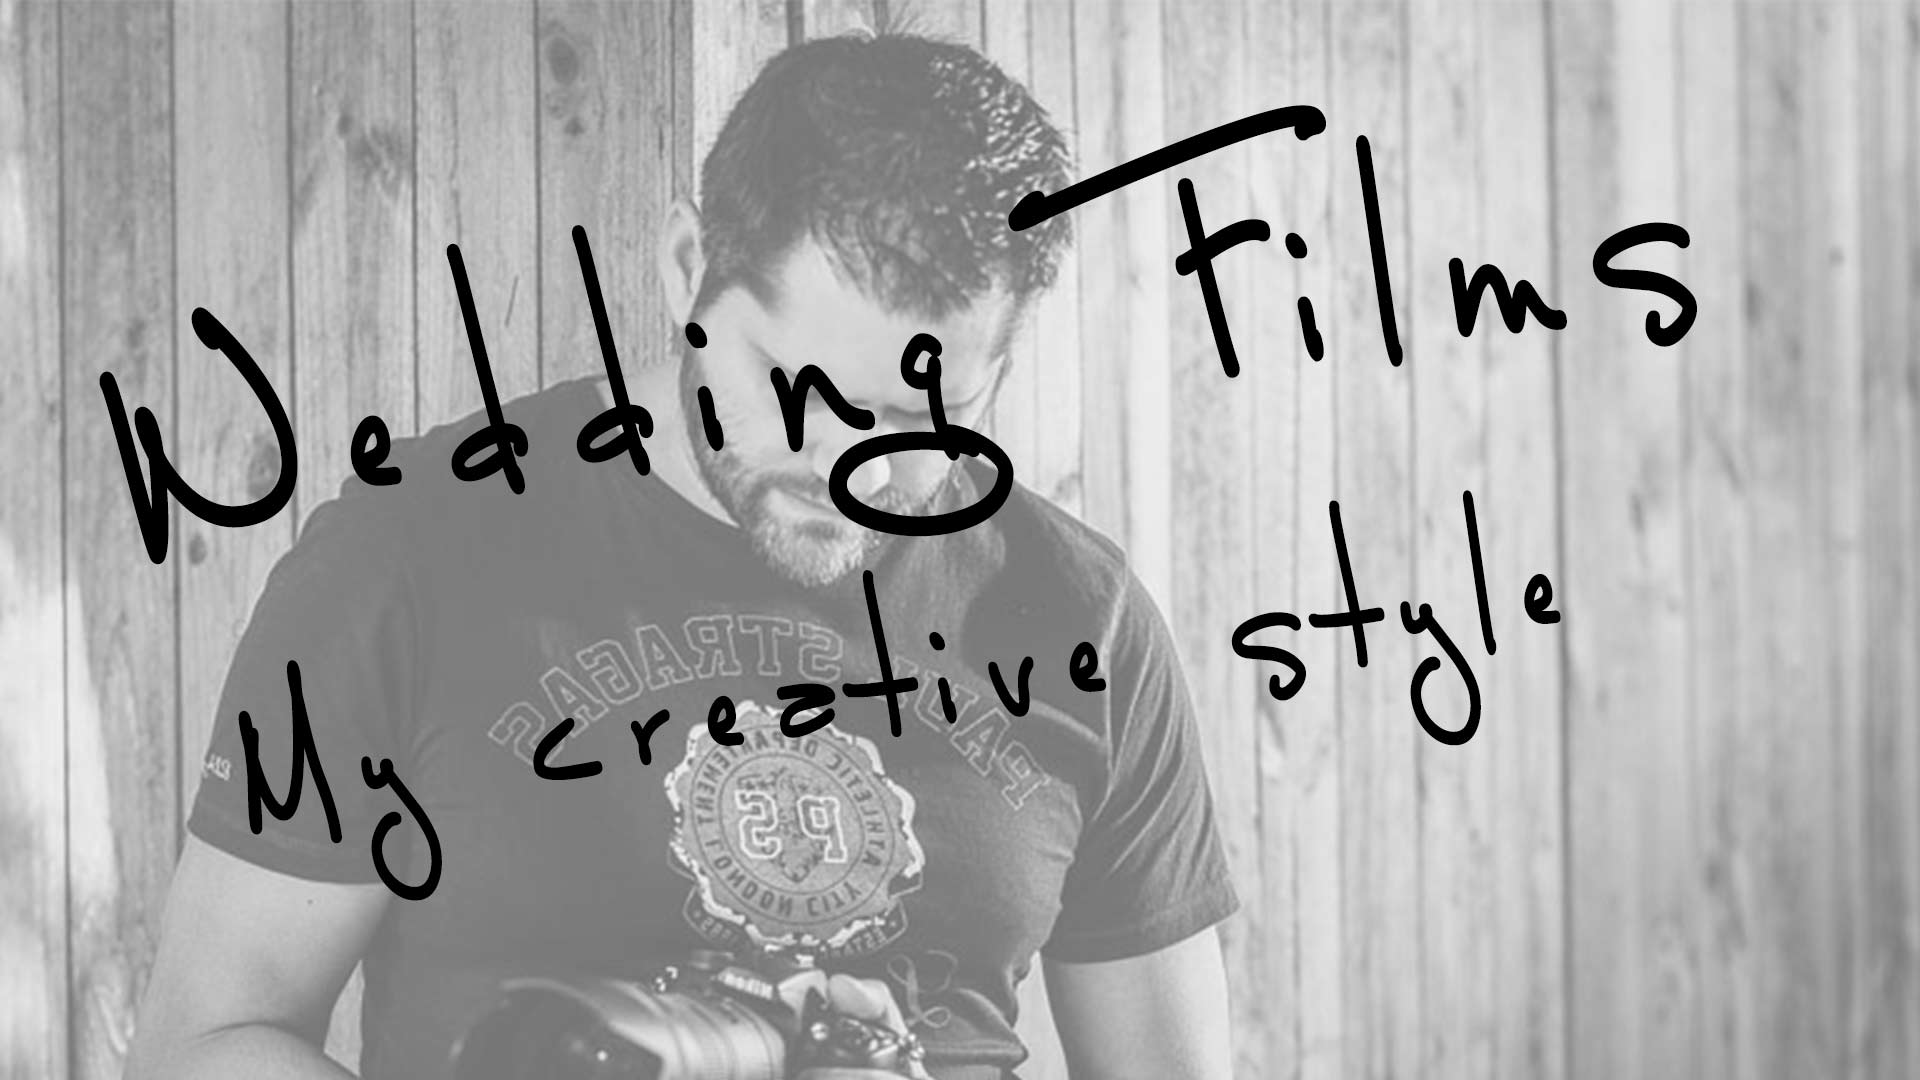 Wedding films – my creative style